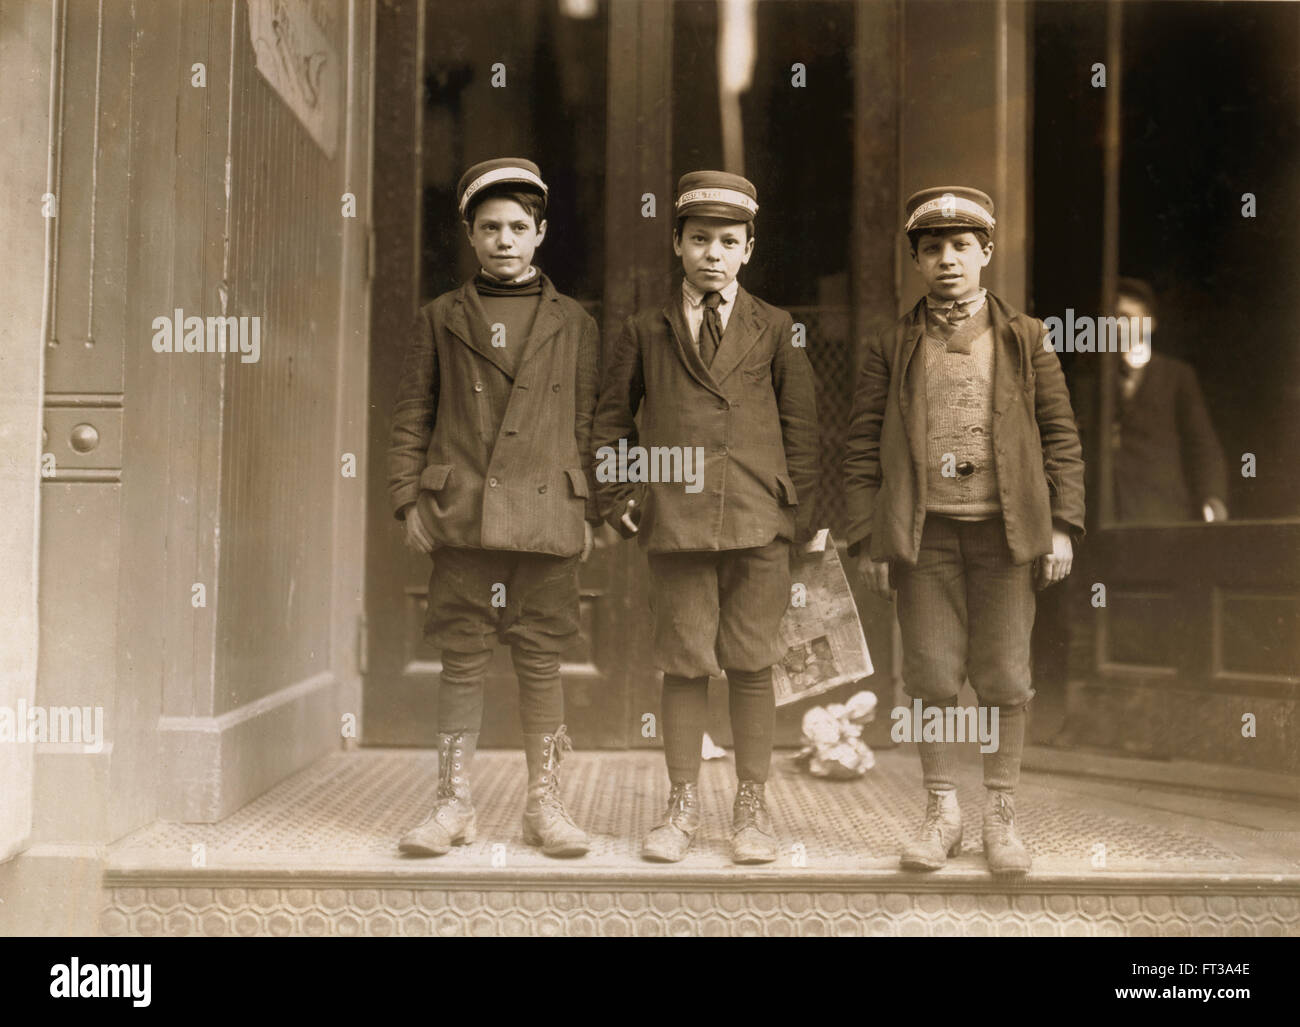 Portrait of Three Young Messenger Boys, New Haven, Connecticut, USA, circa 1909 - Stock Image